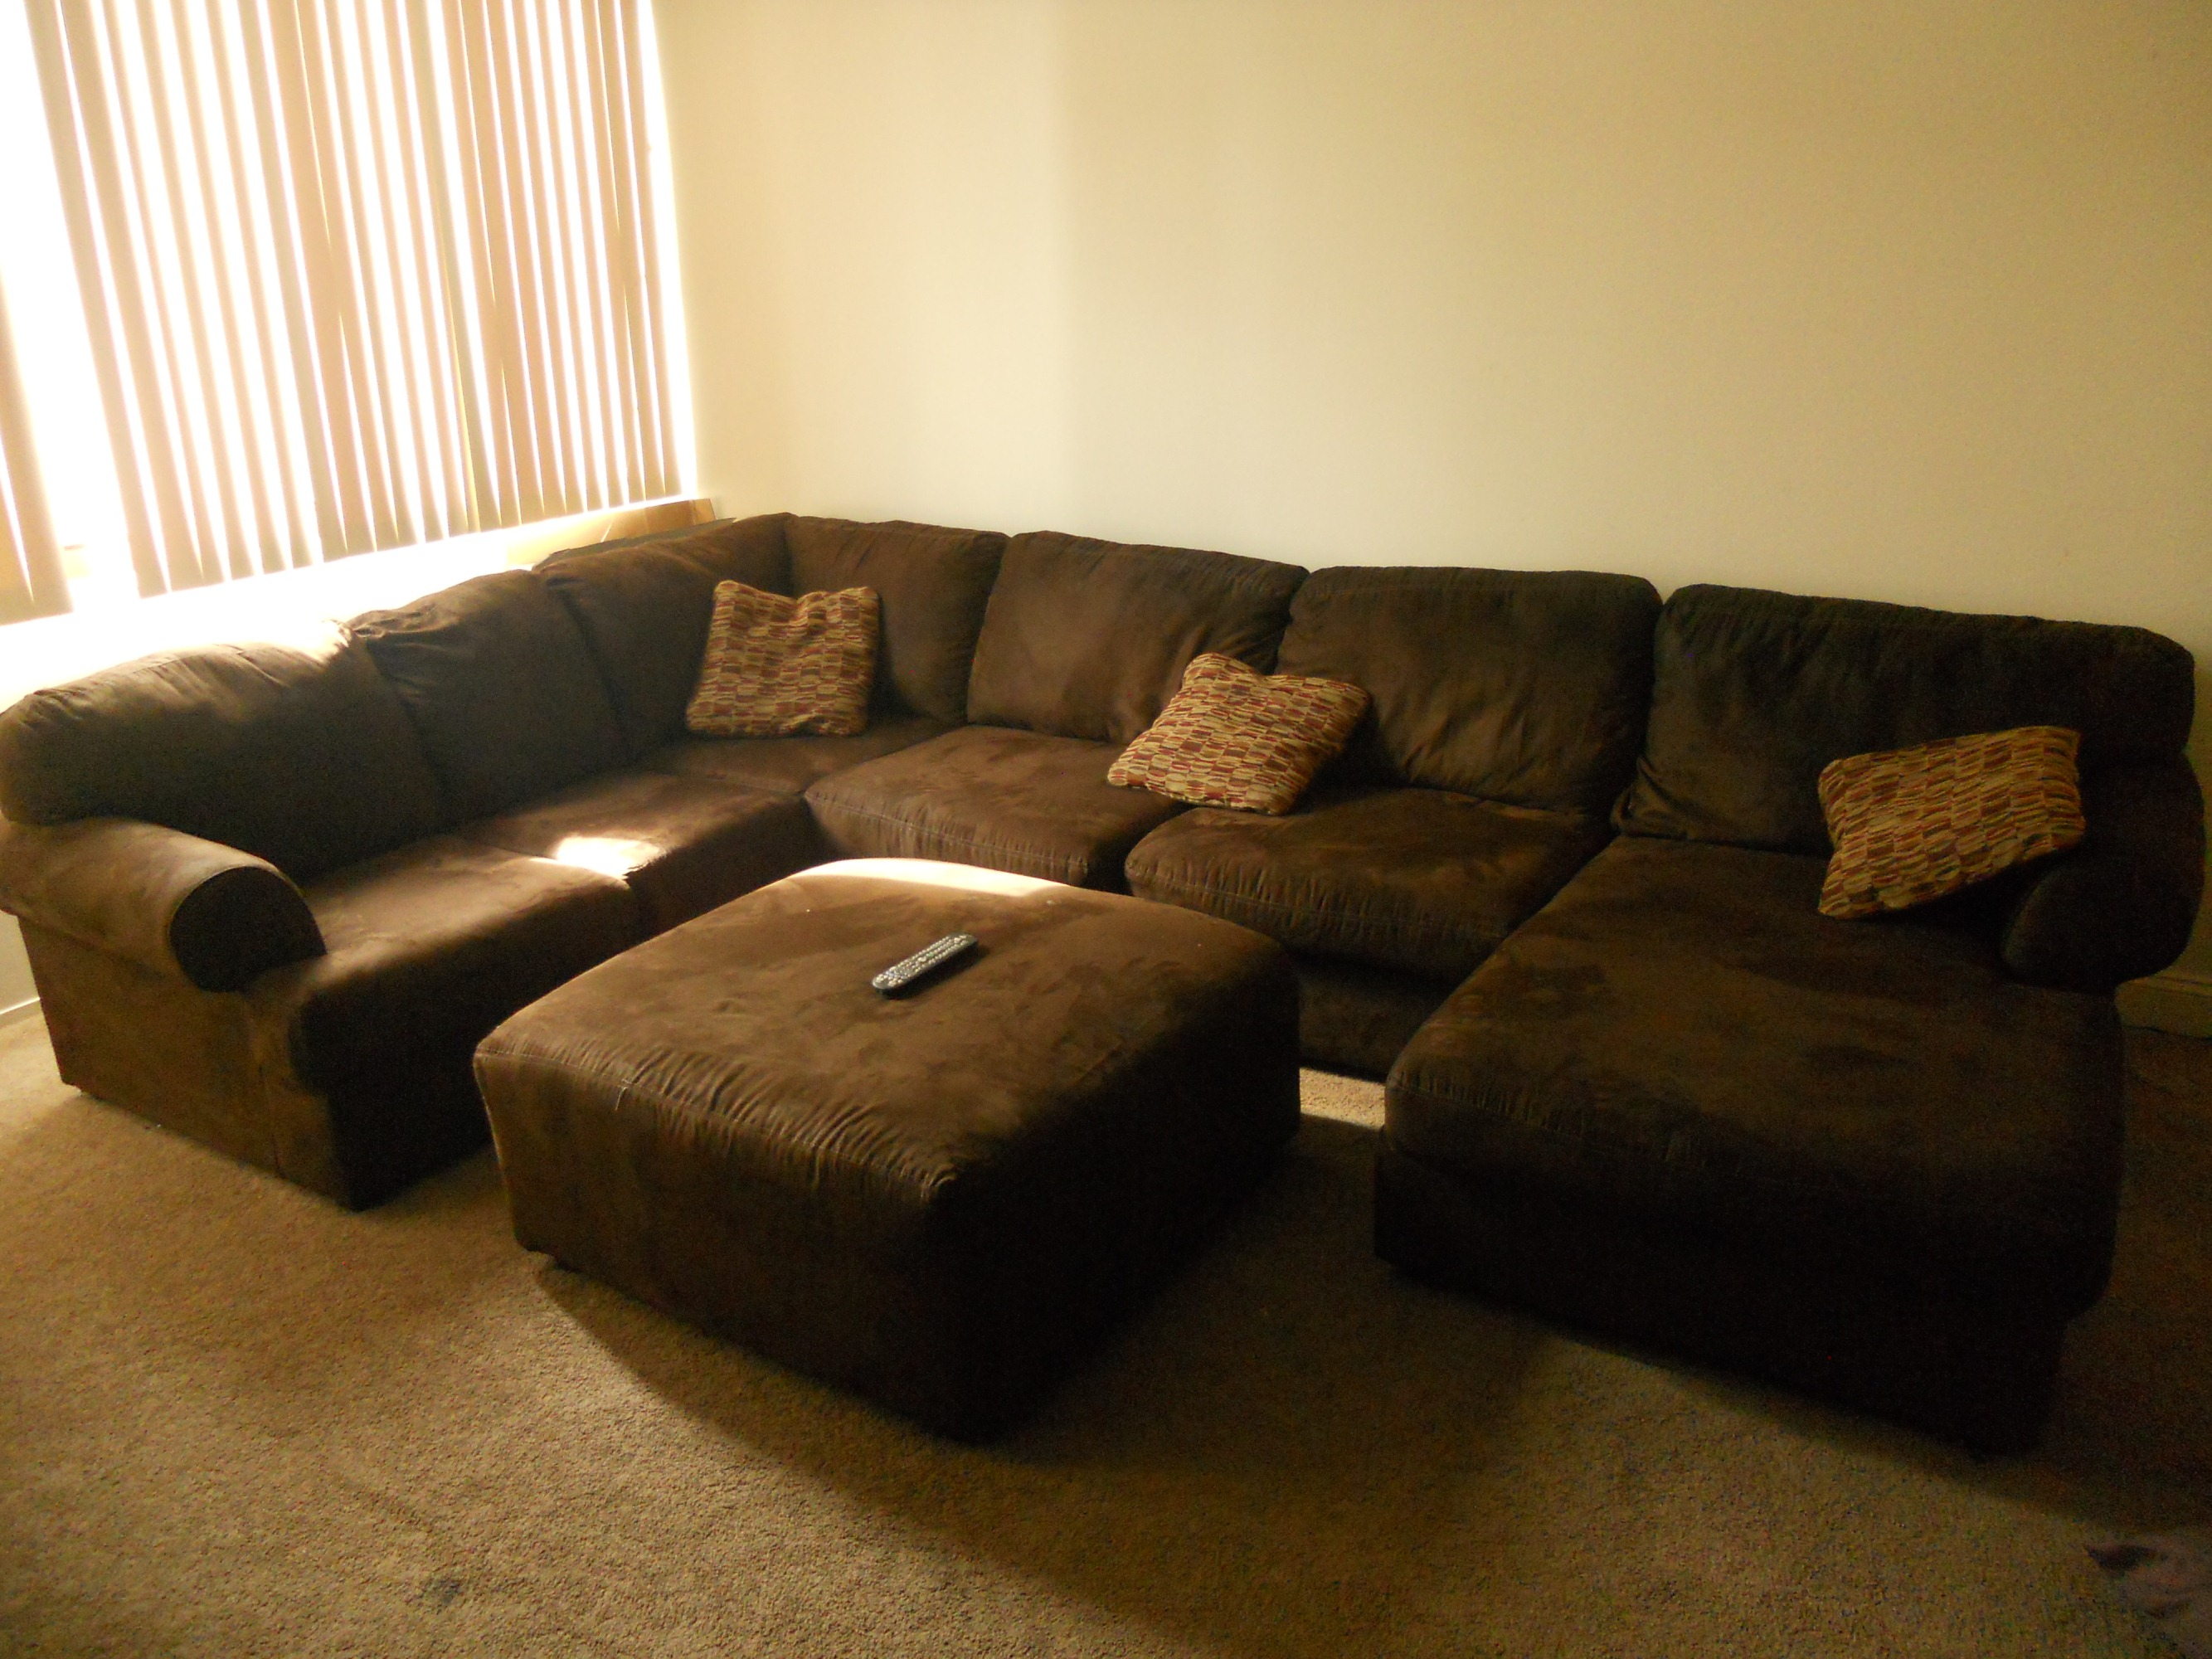 Downtown cleveland Sectional FOR SALE Classified Ads Buy and